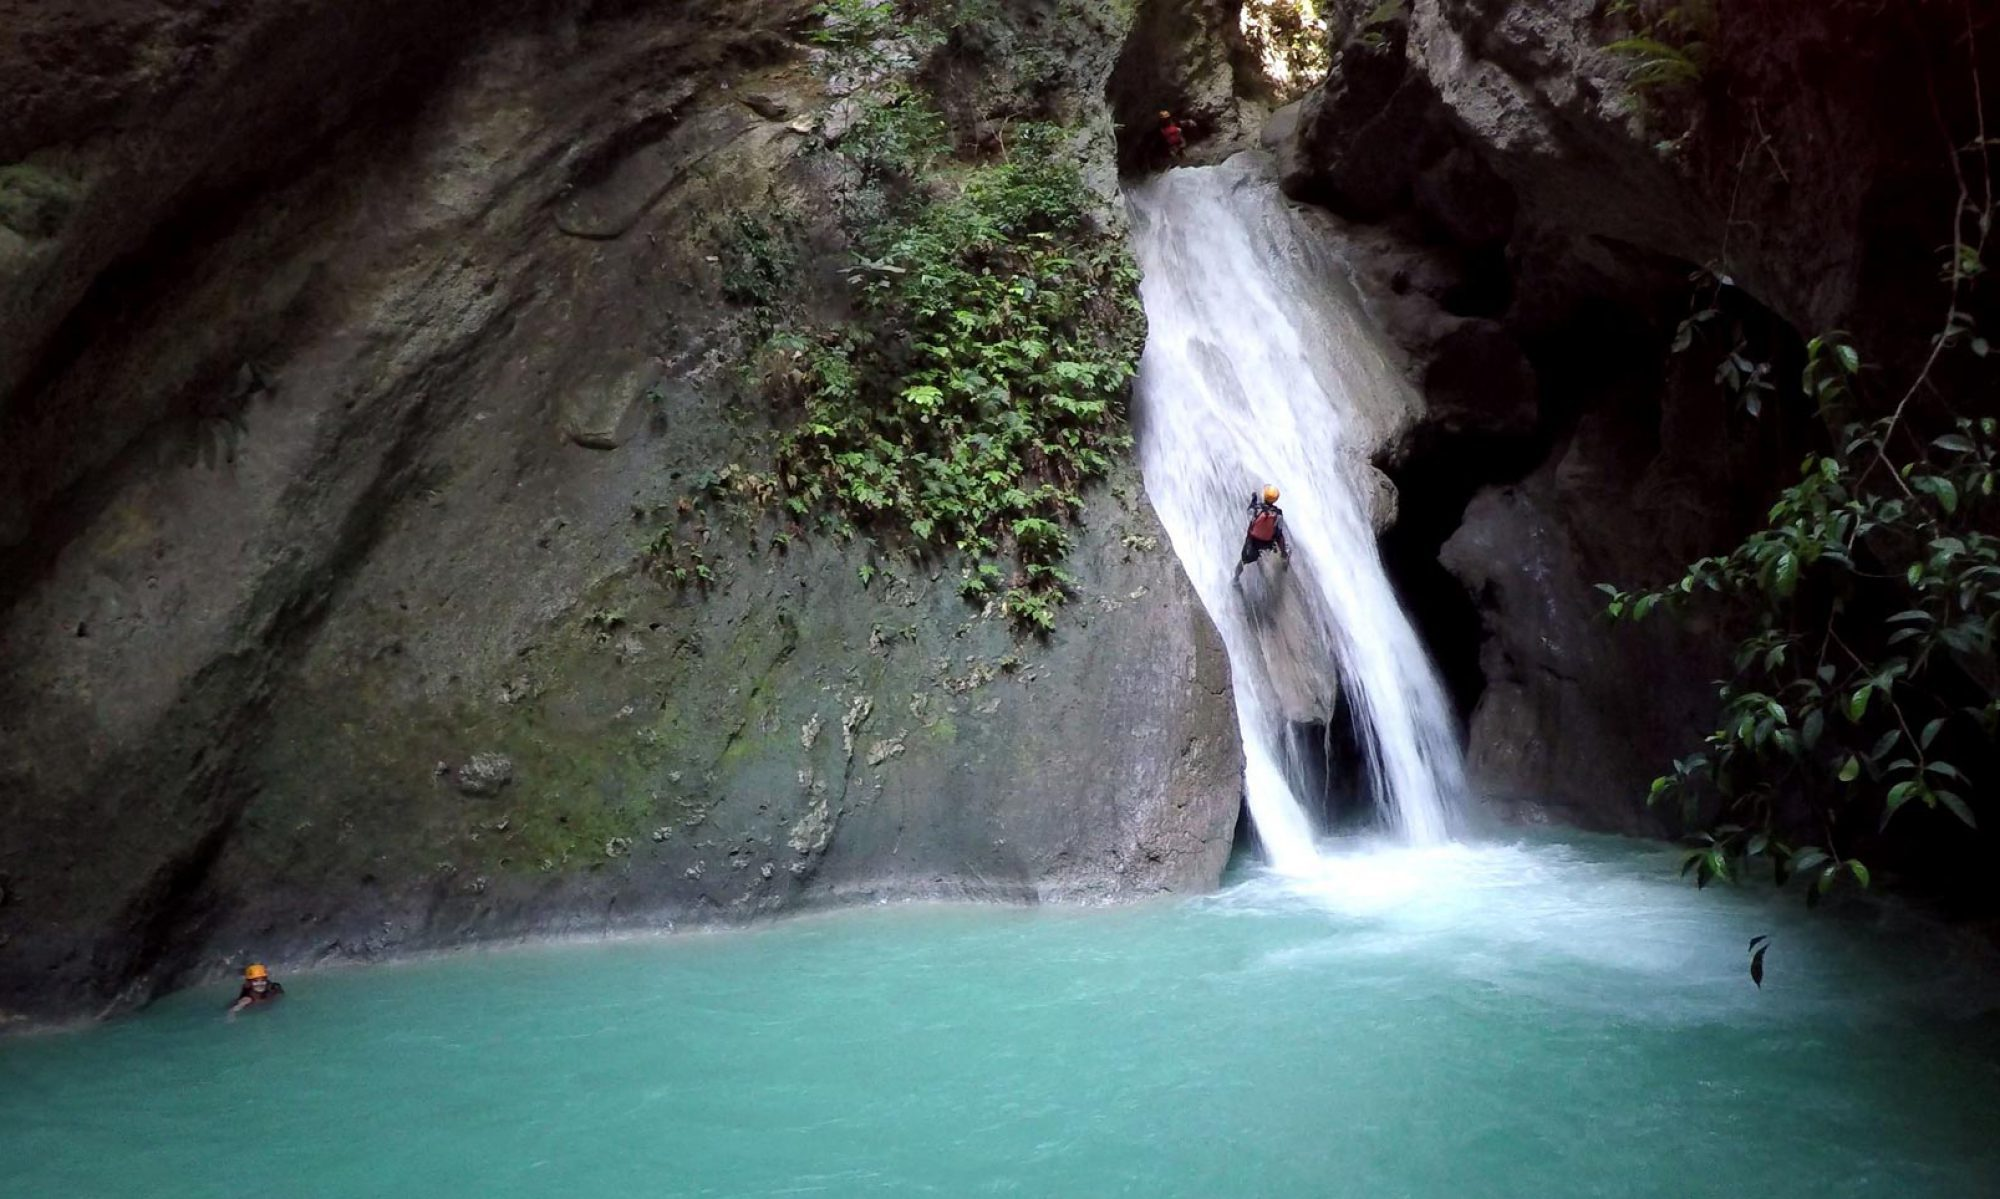 Canyoning at Tison fall Cebu Philippines